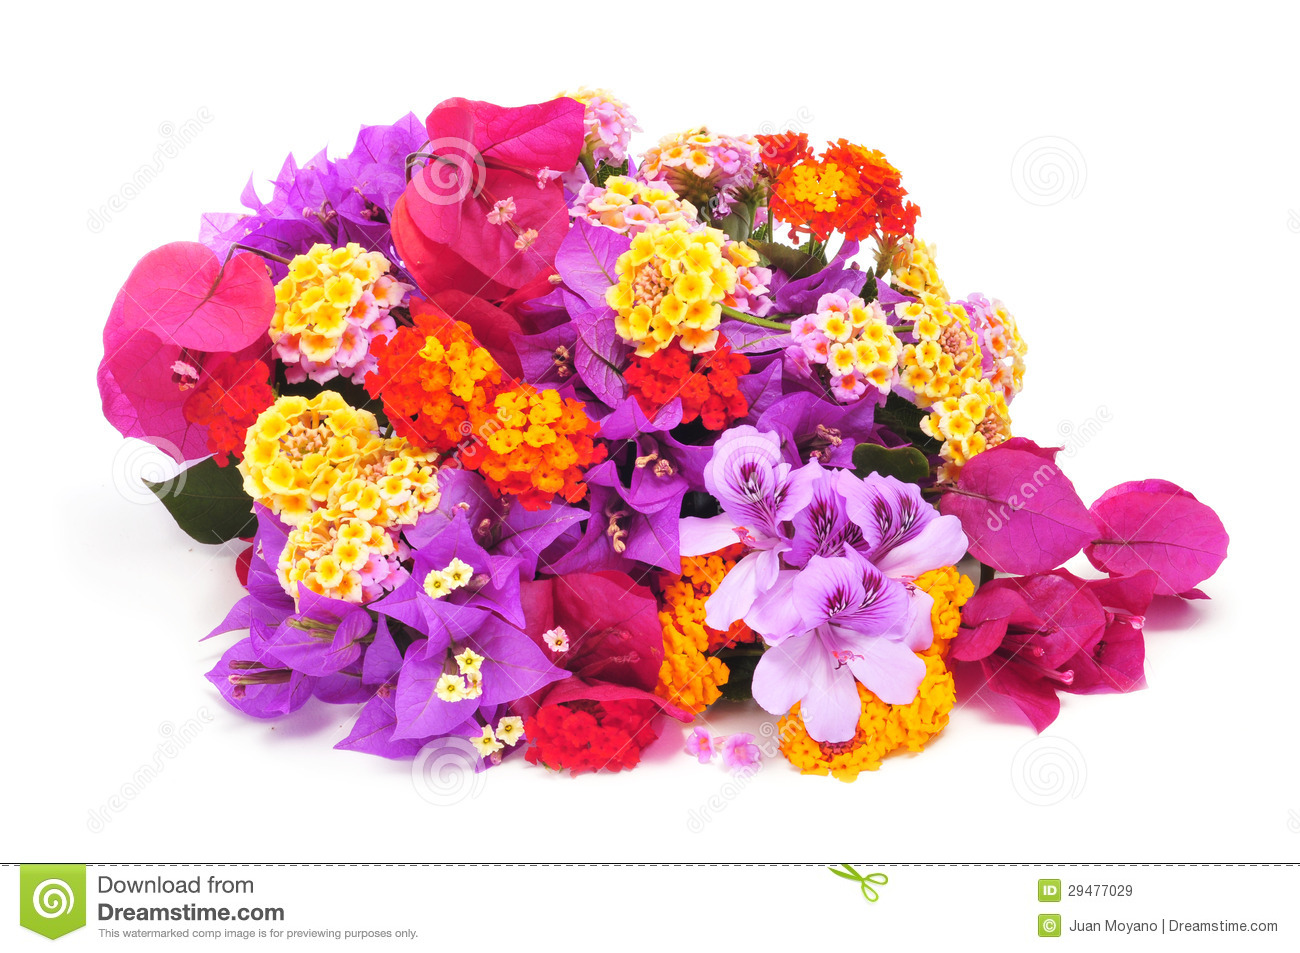 Bunch of flowers images download. Different royalty free stock